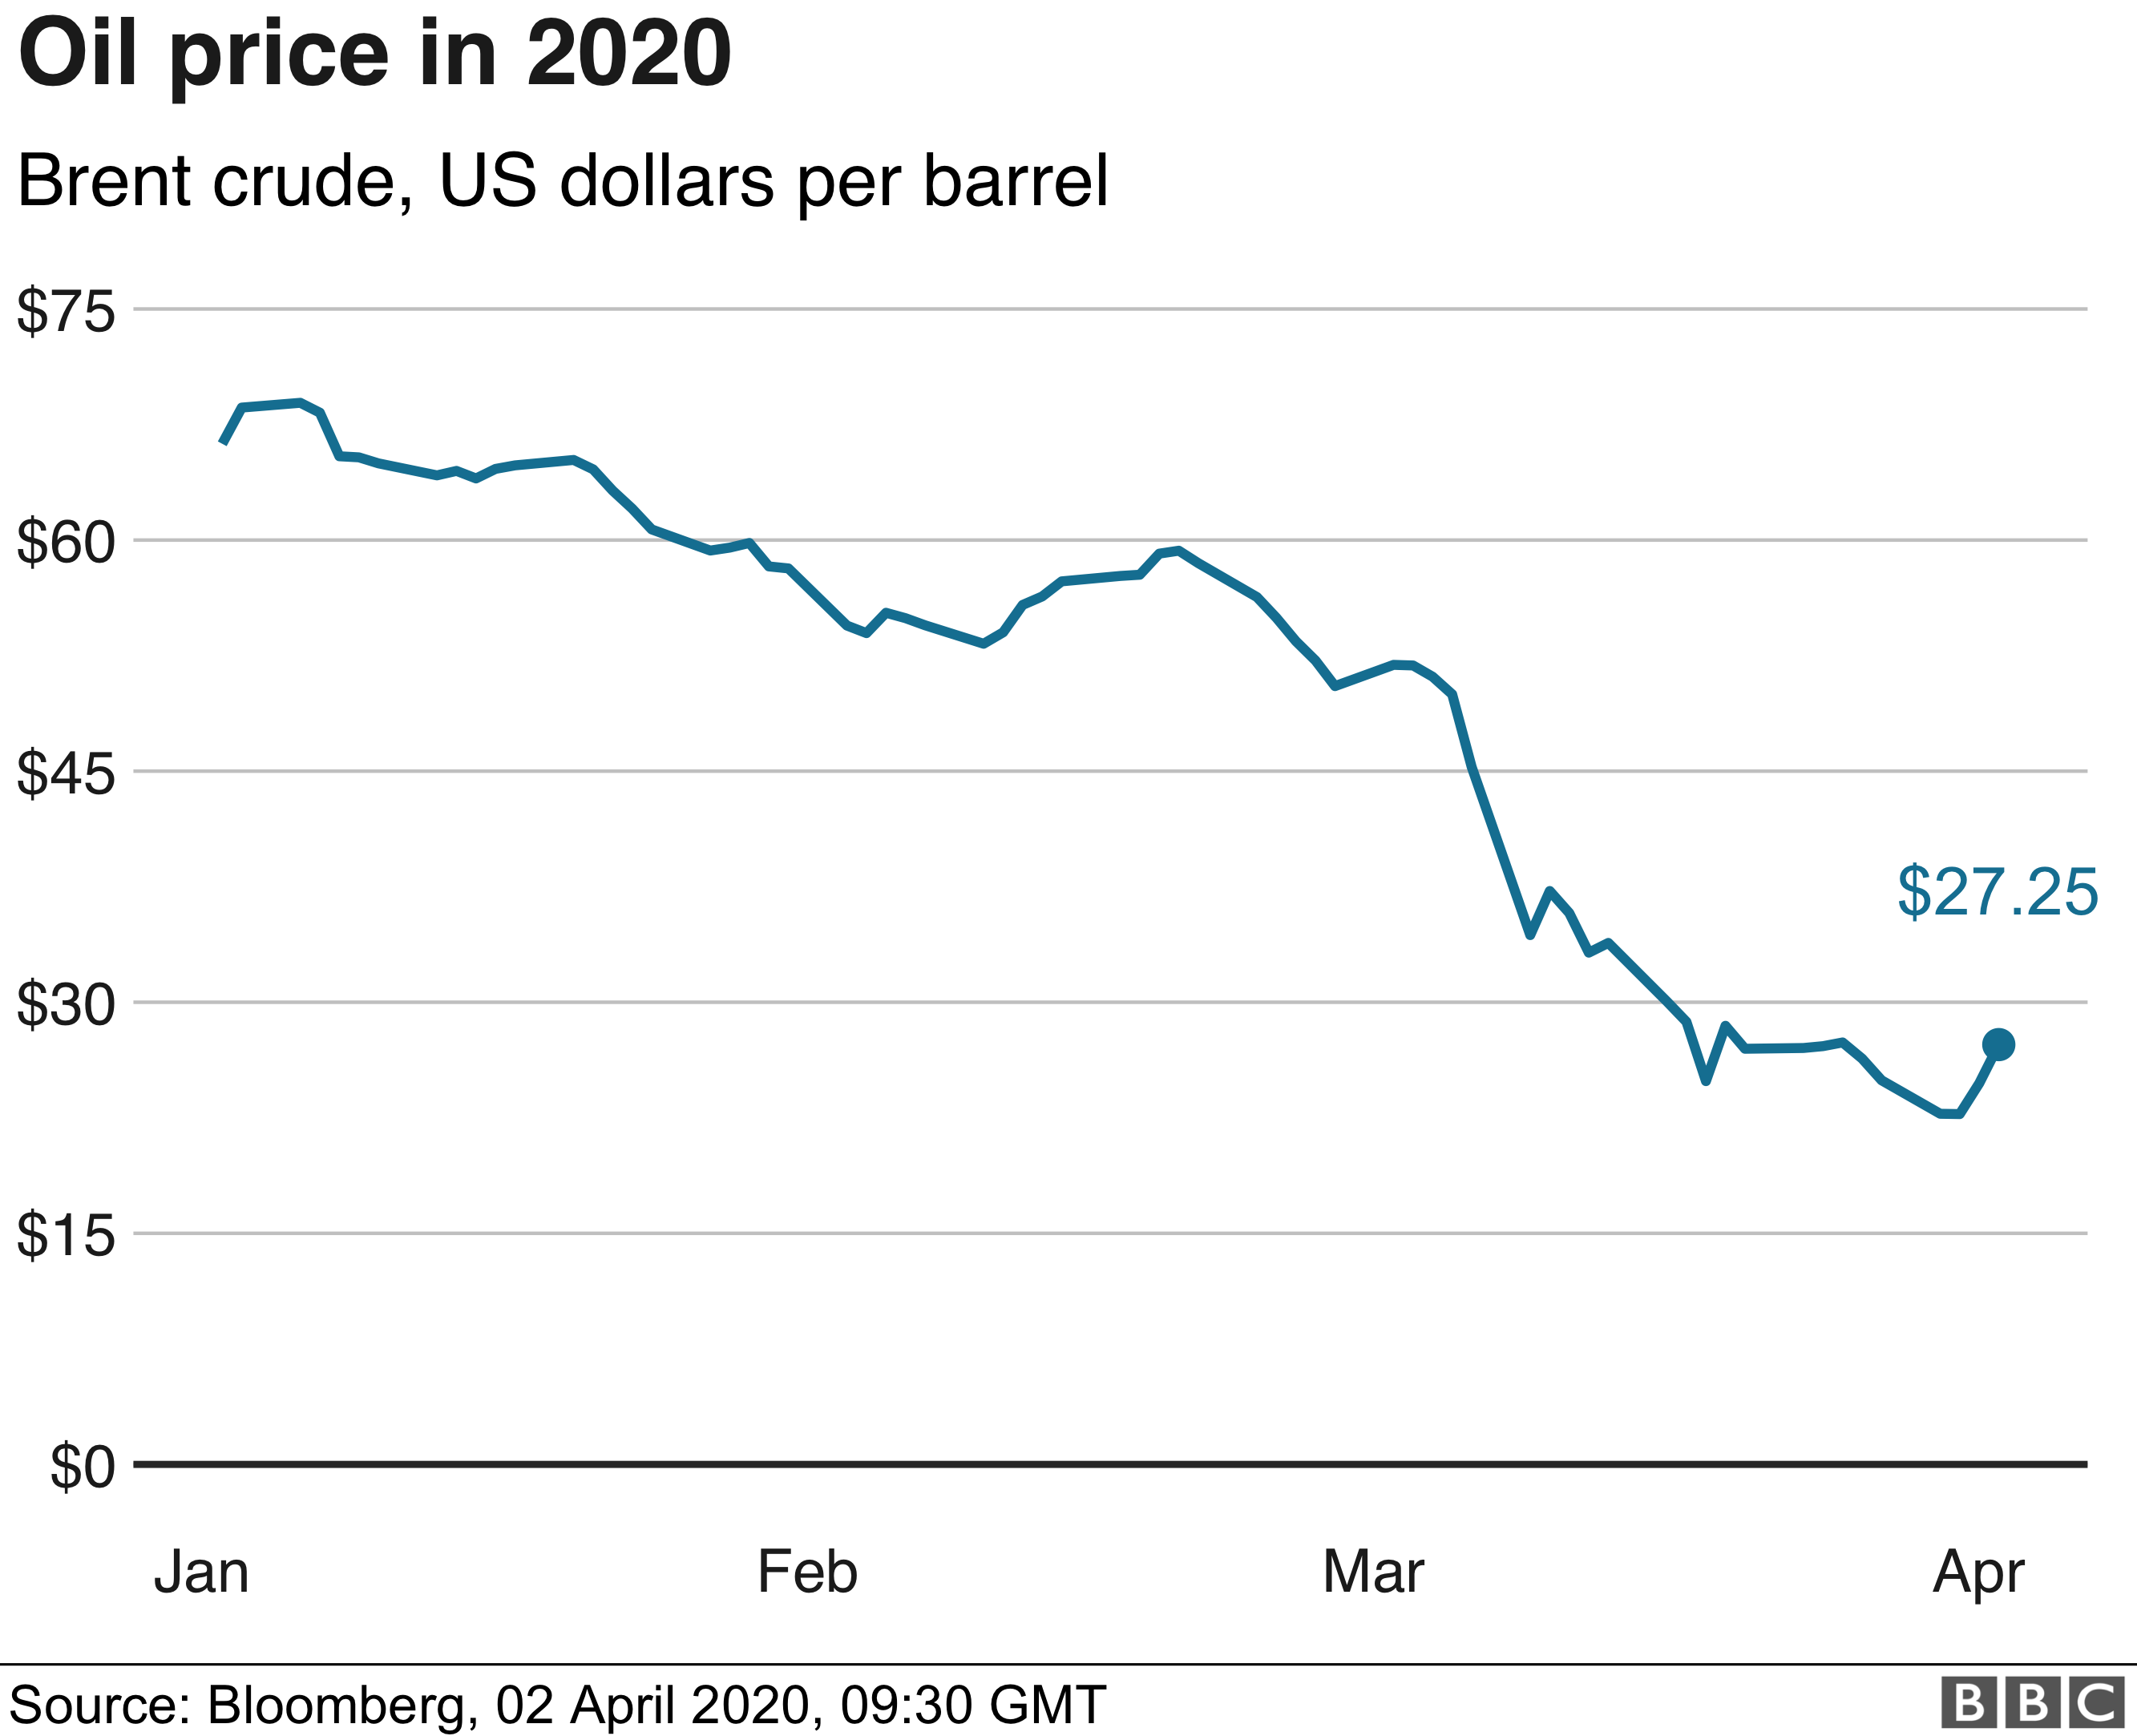 Coronavirus: Oil prices surge on hopes of a price war truce - BBC News